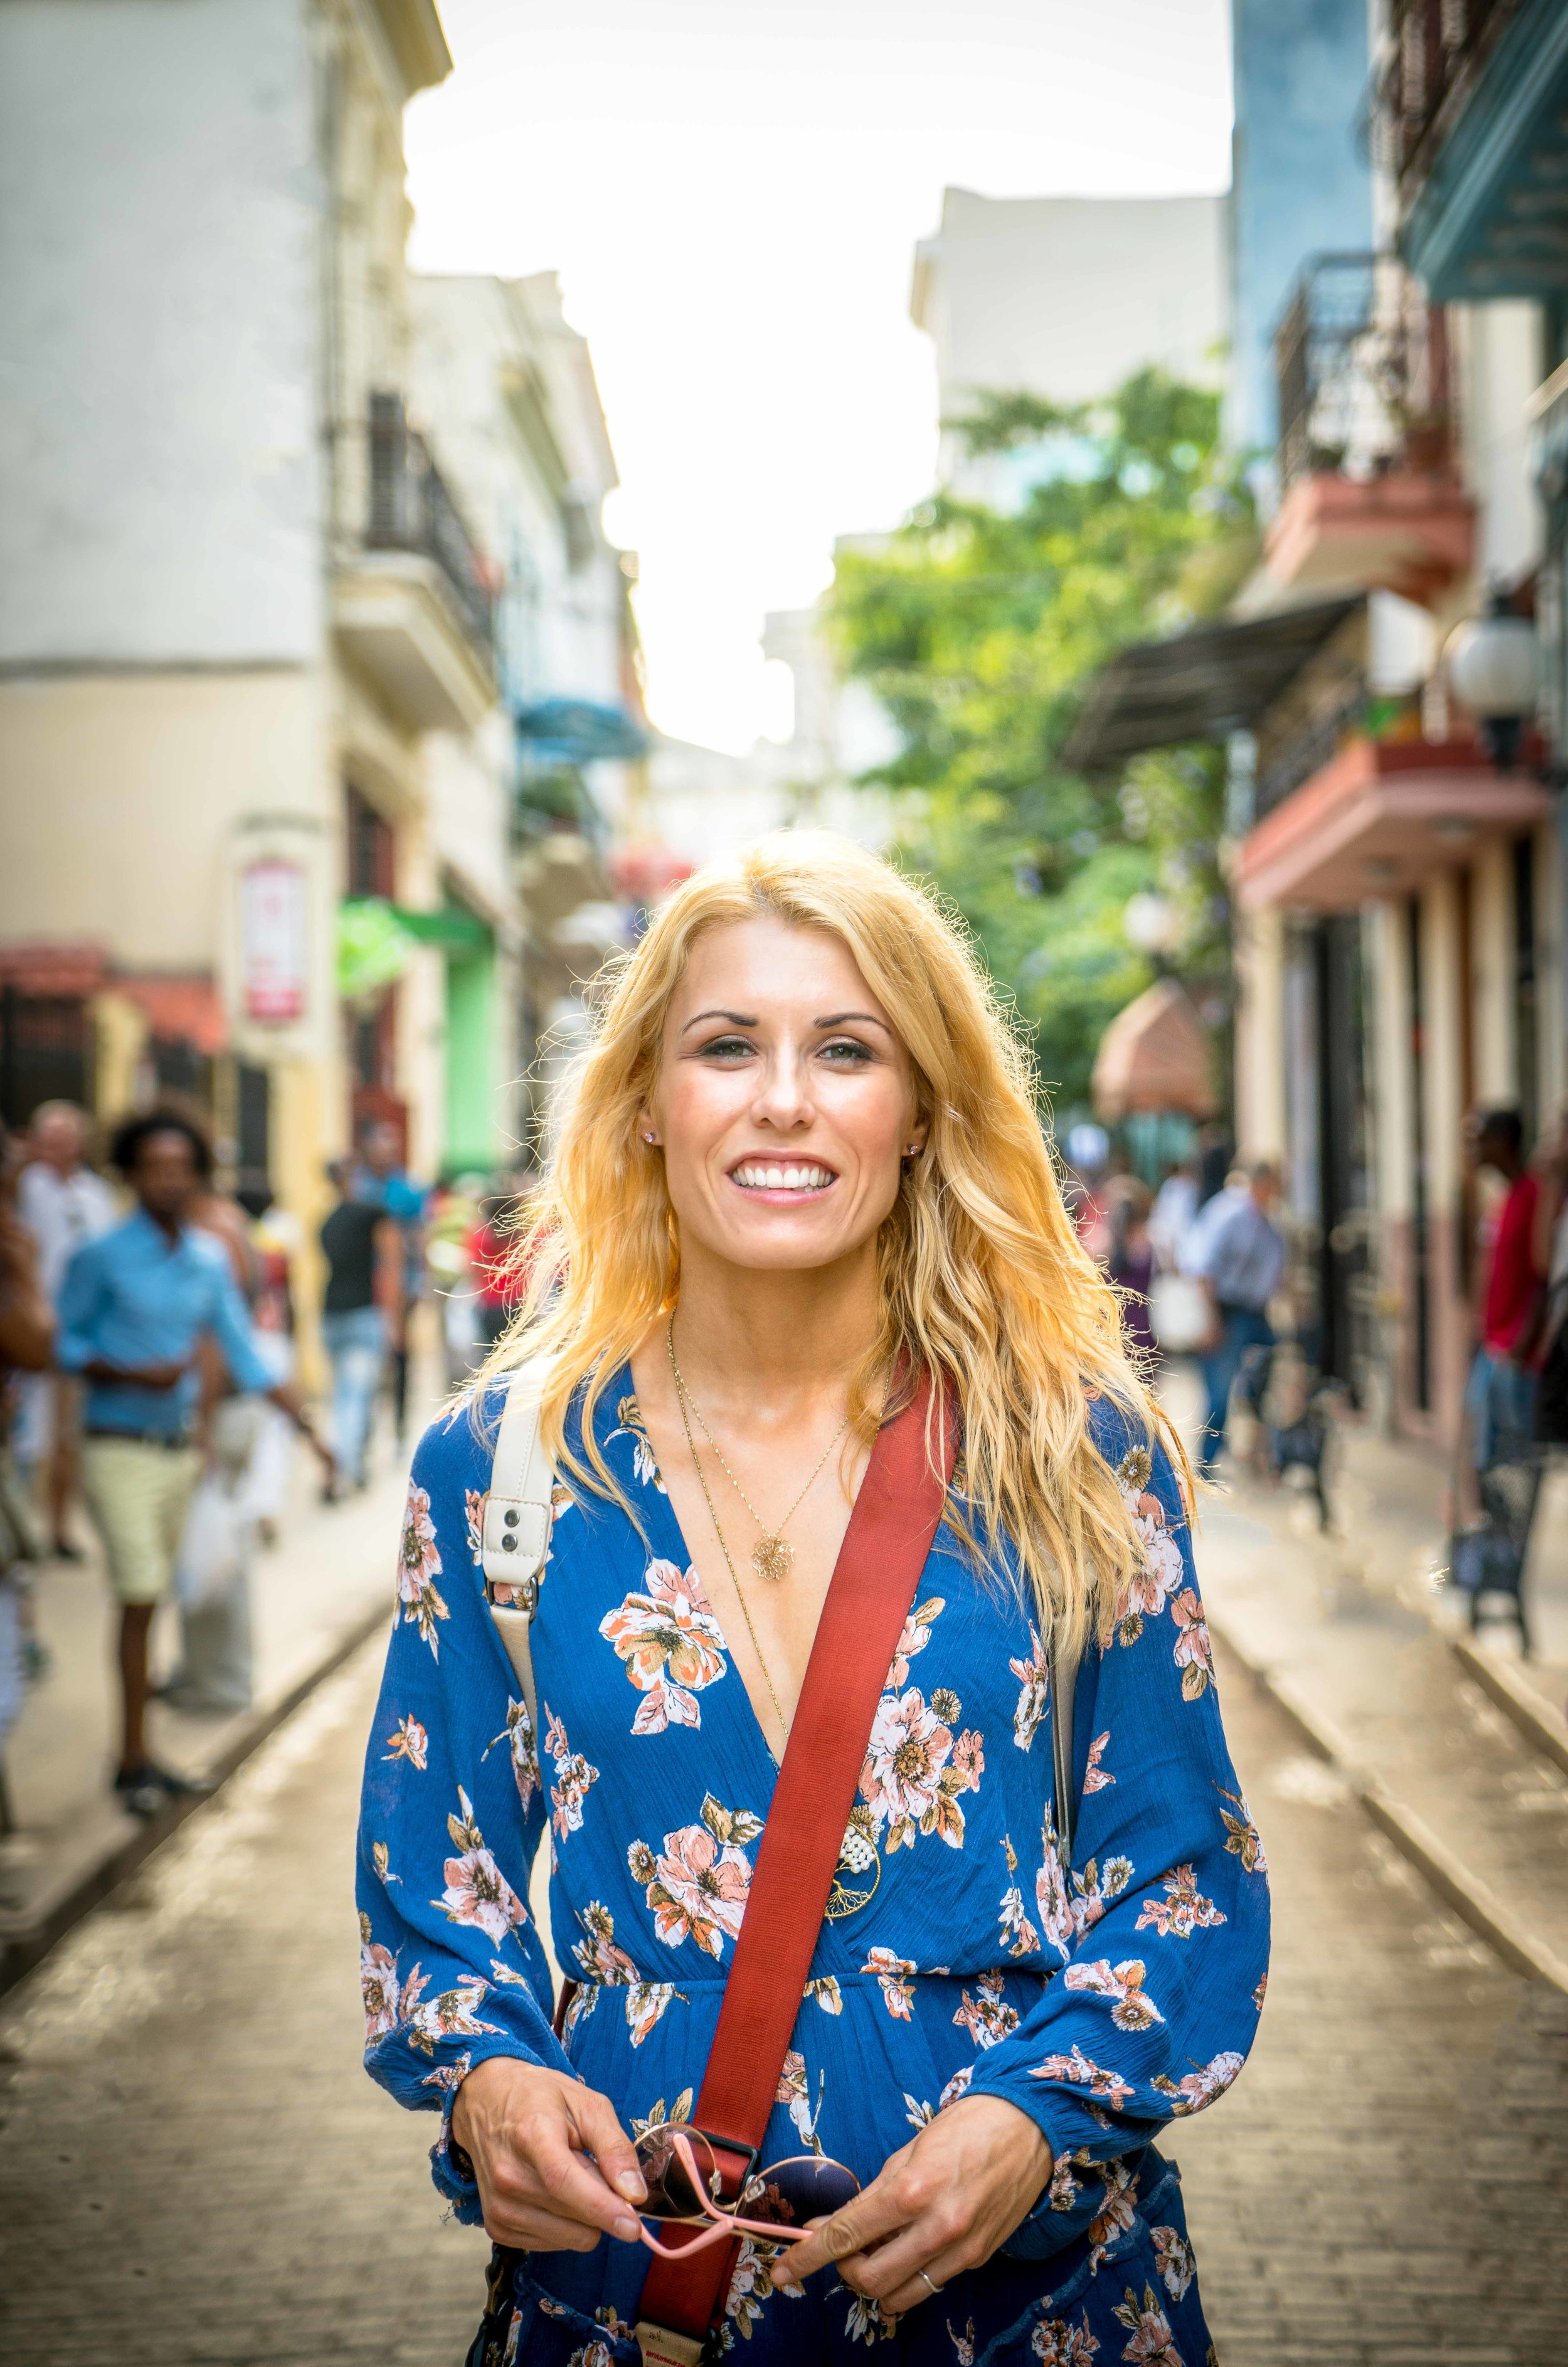 Walking around the colorful streets of Cuba.